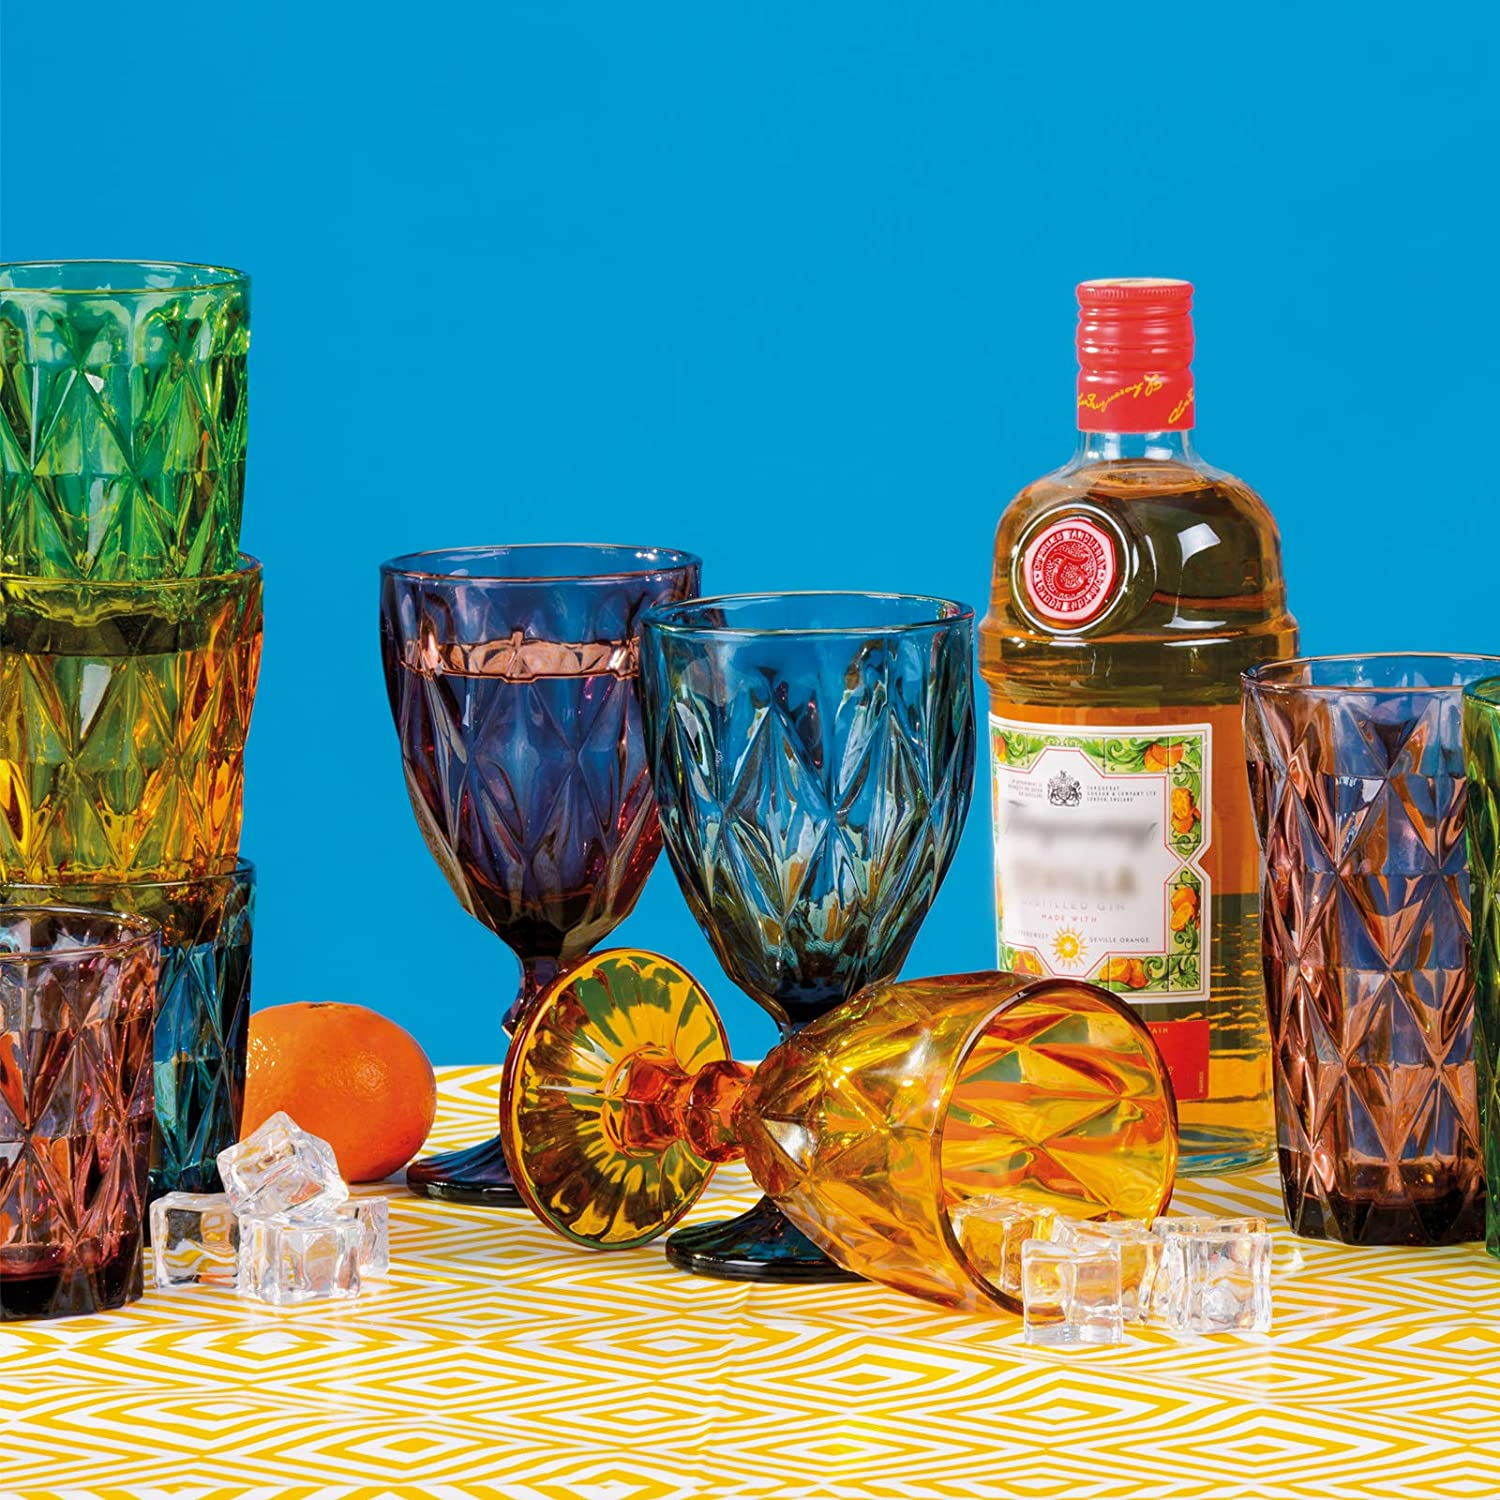 ARTLAND Set of 4 Highgate Goblets, Multi Colour, 9 x 9 x 17